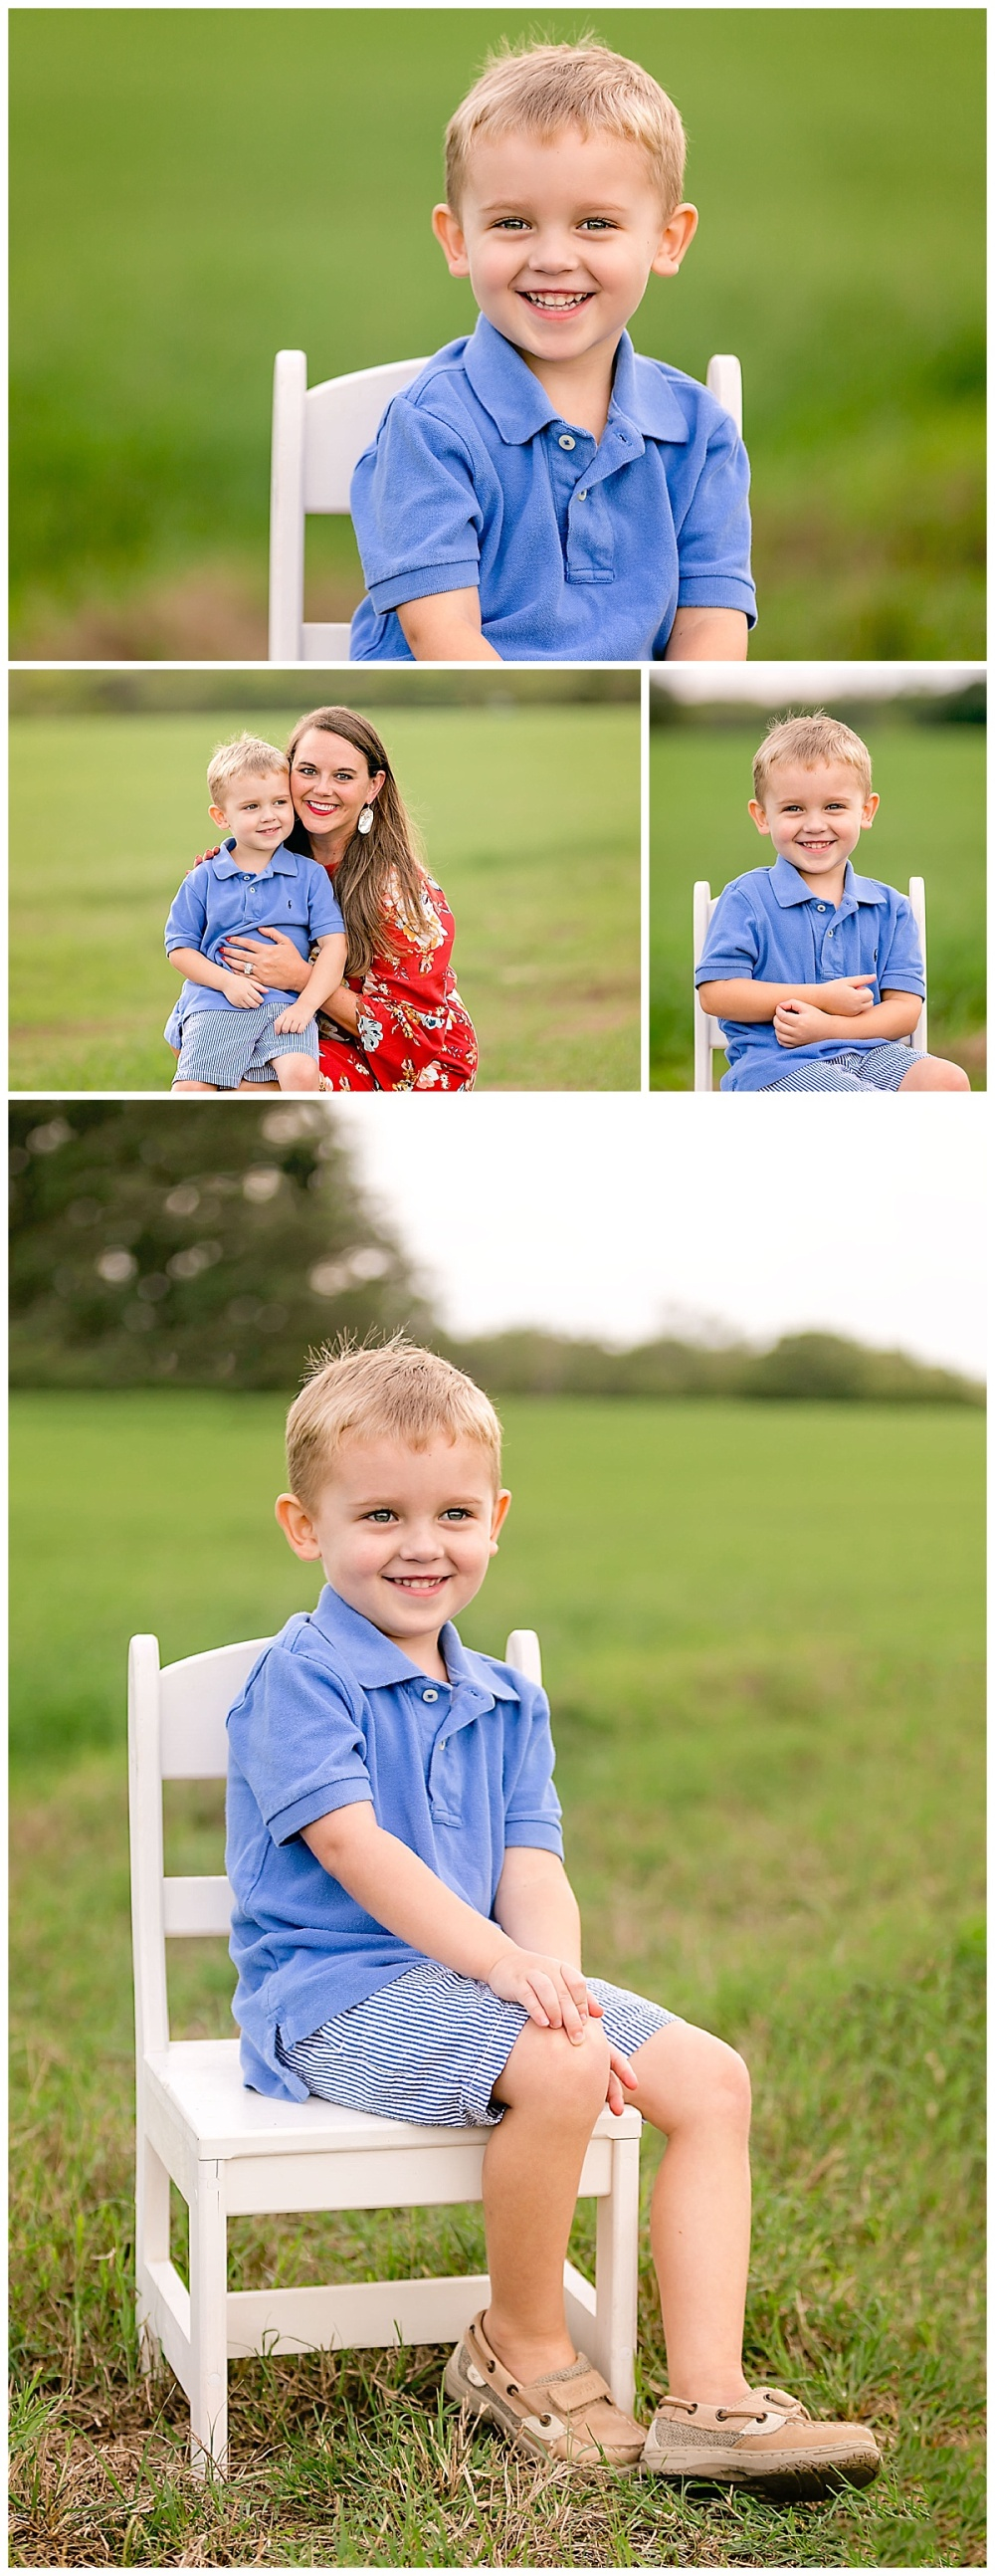 Carly-Barton-Photography-Texas-Family-Photos-Rustic-Field-Cake-Smash-Voss_0004.jpg